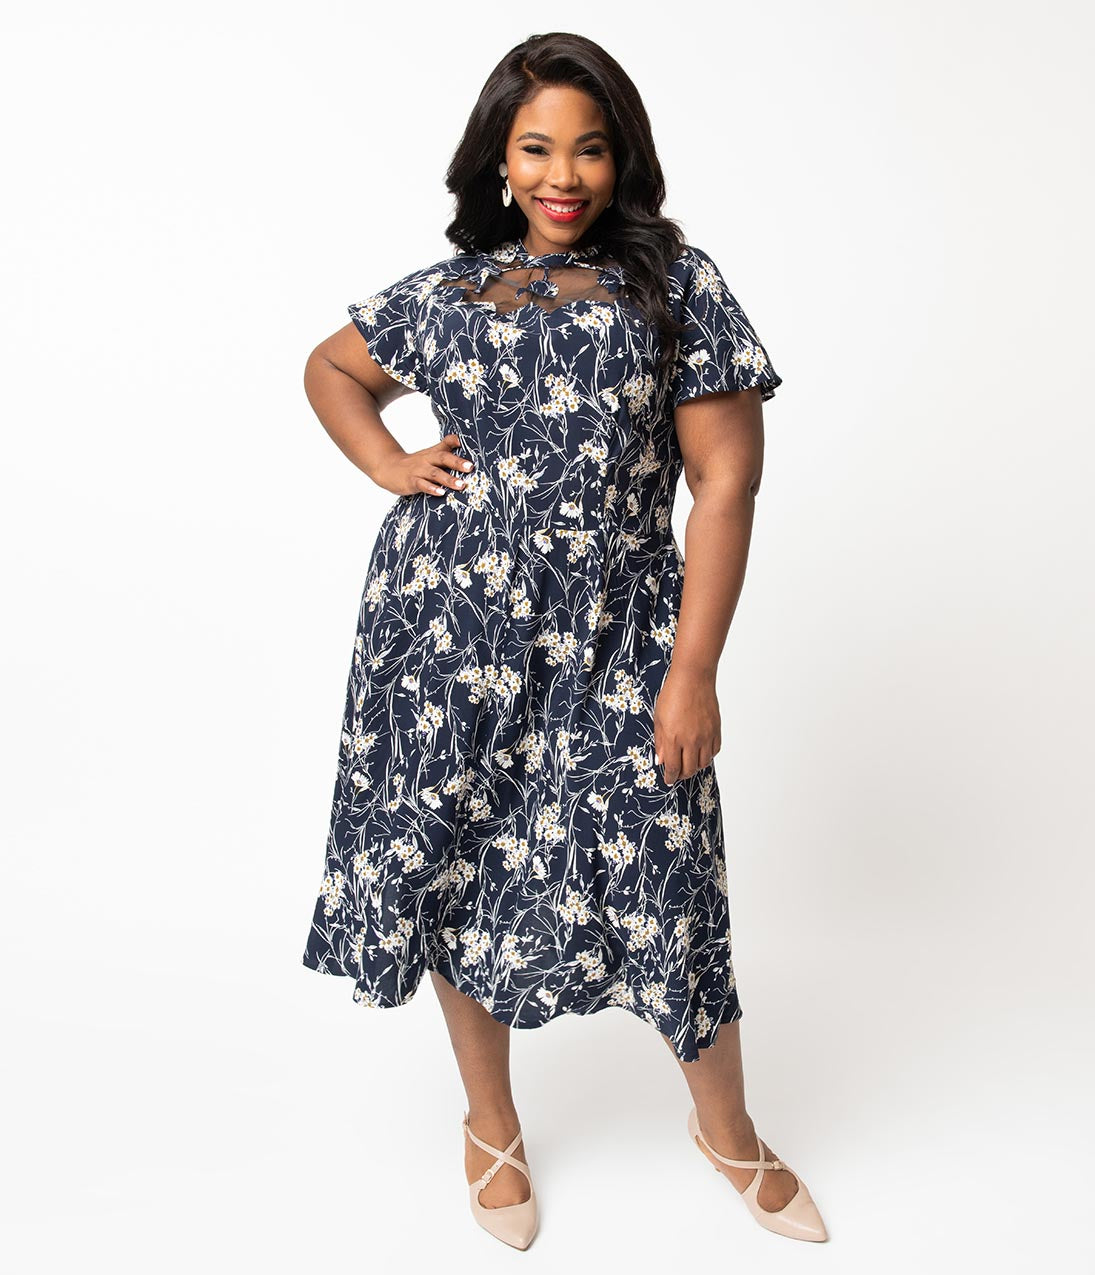 1940s Dresses | 40s Dress, Swing Dress Unique Vintage Plus Size 1940S Style Navy  White Floral Print Jessie Swing Dress $88.00 AT vintagedancer.com